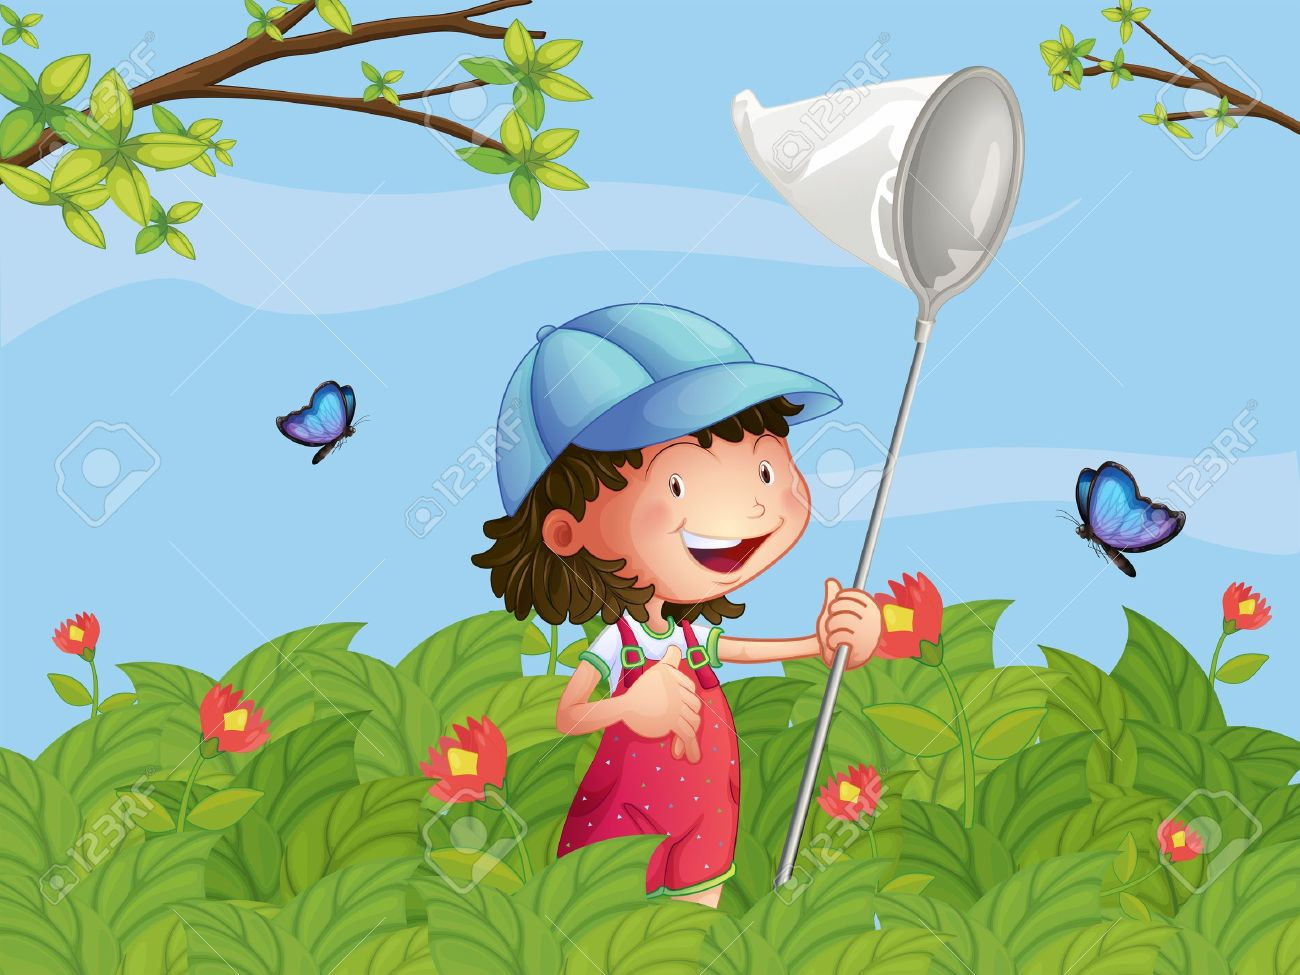 Illustration of a girl with a cap catching butterflies in the garden Stock Vector - 17918507